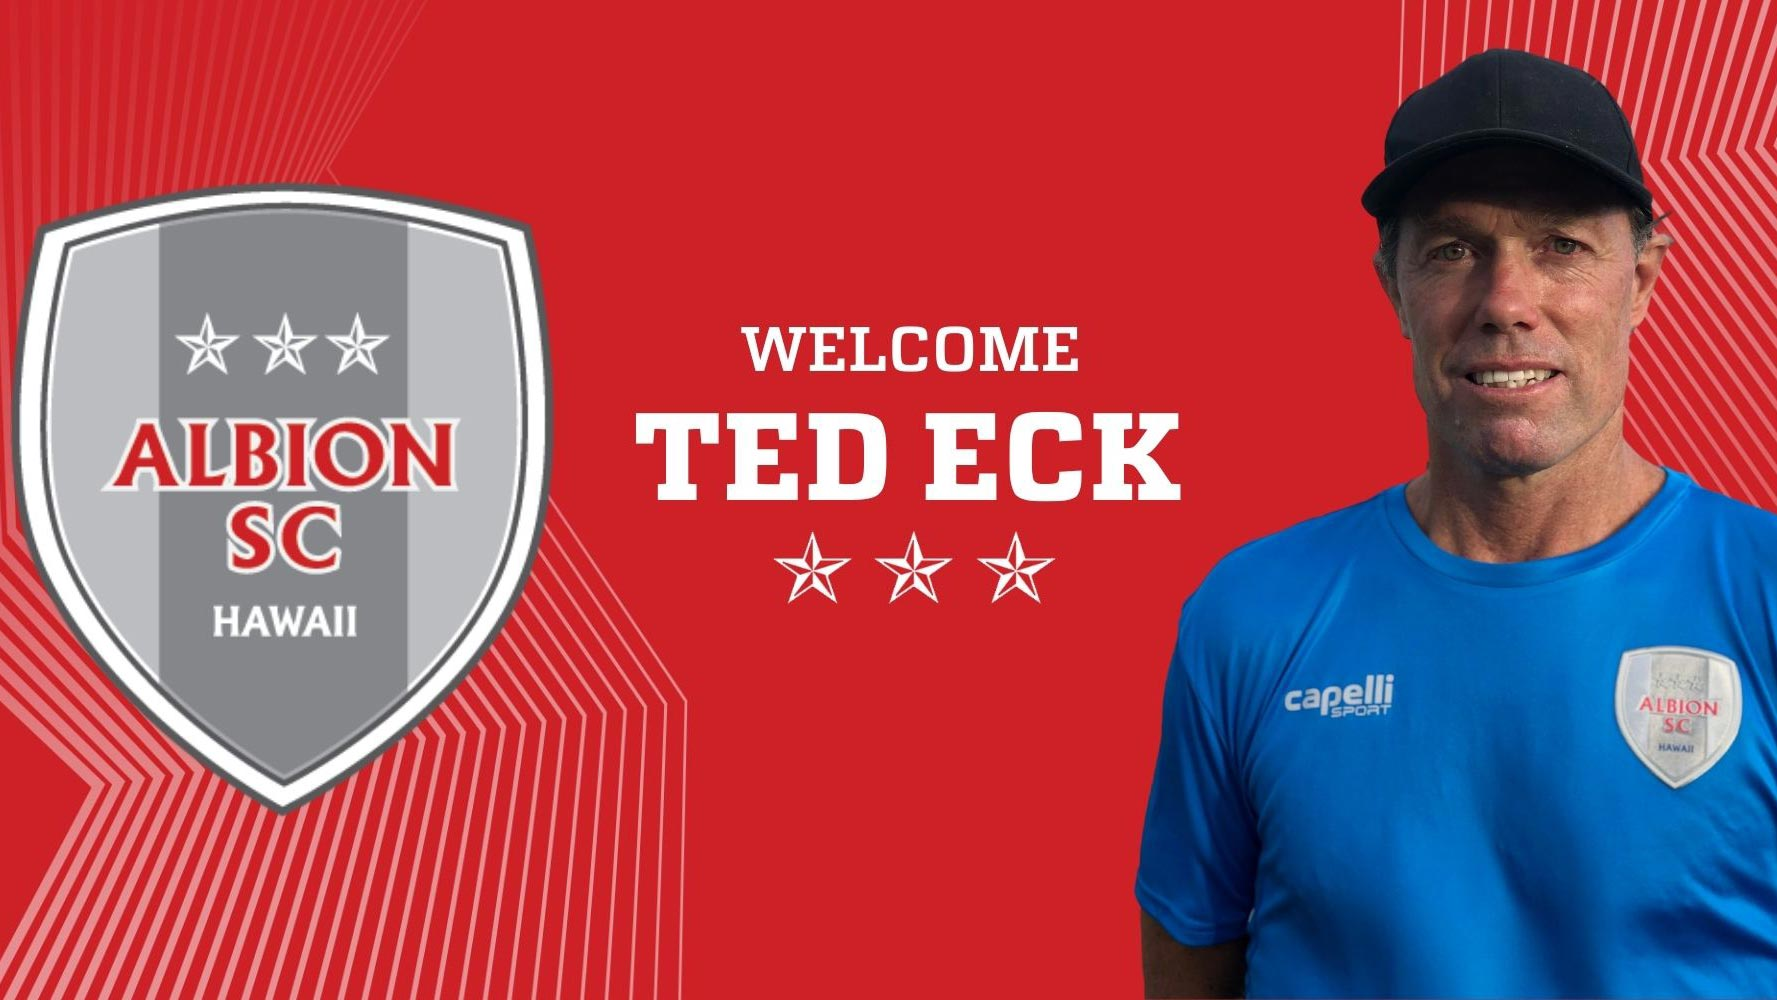 ALBION Hawaii Welcomes Former MLS Assistant Coach Ted Eck